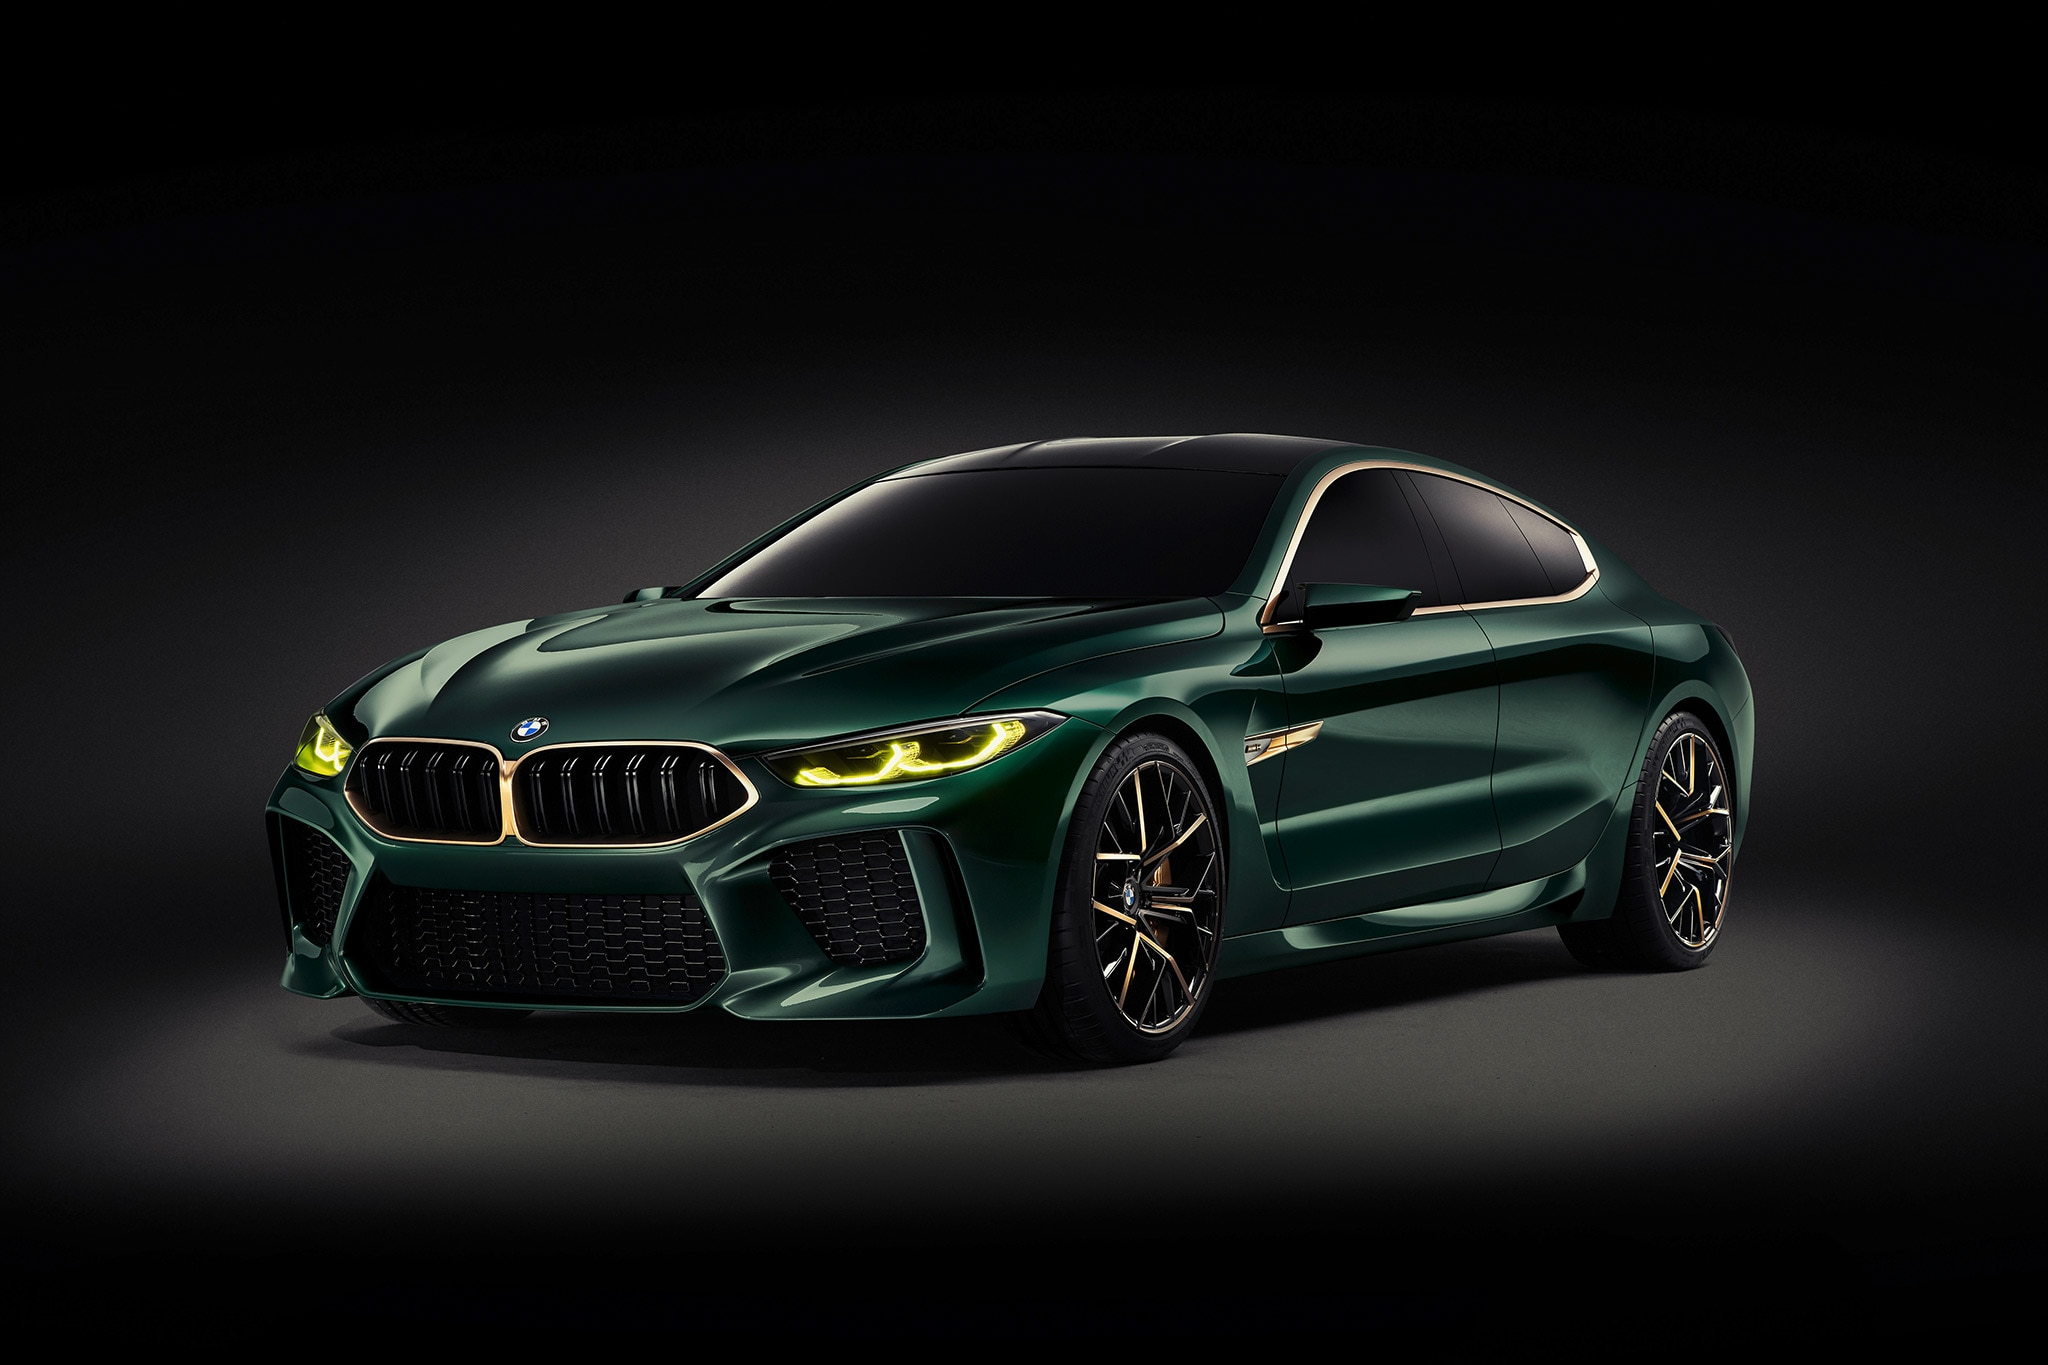 four door bmw concept m8 gran coupe concept unveiled in geneva automobile magazine. Black Bedroom Furniture Sets. Home Design Ideas